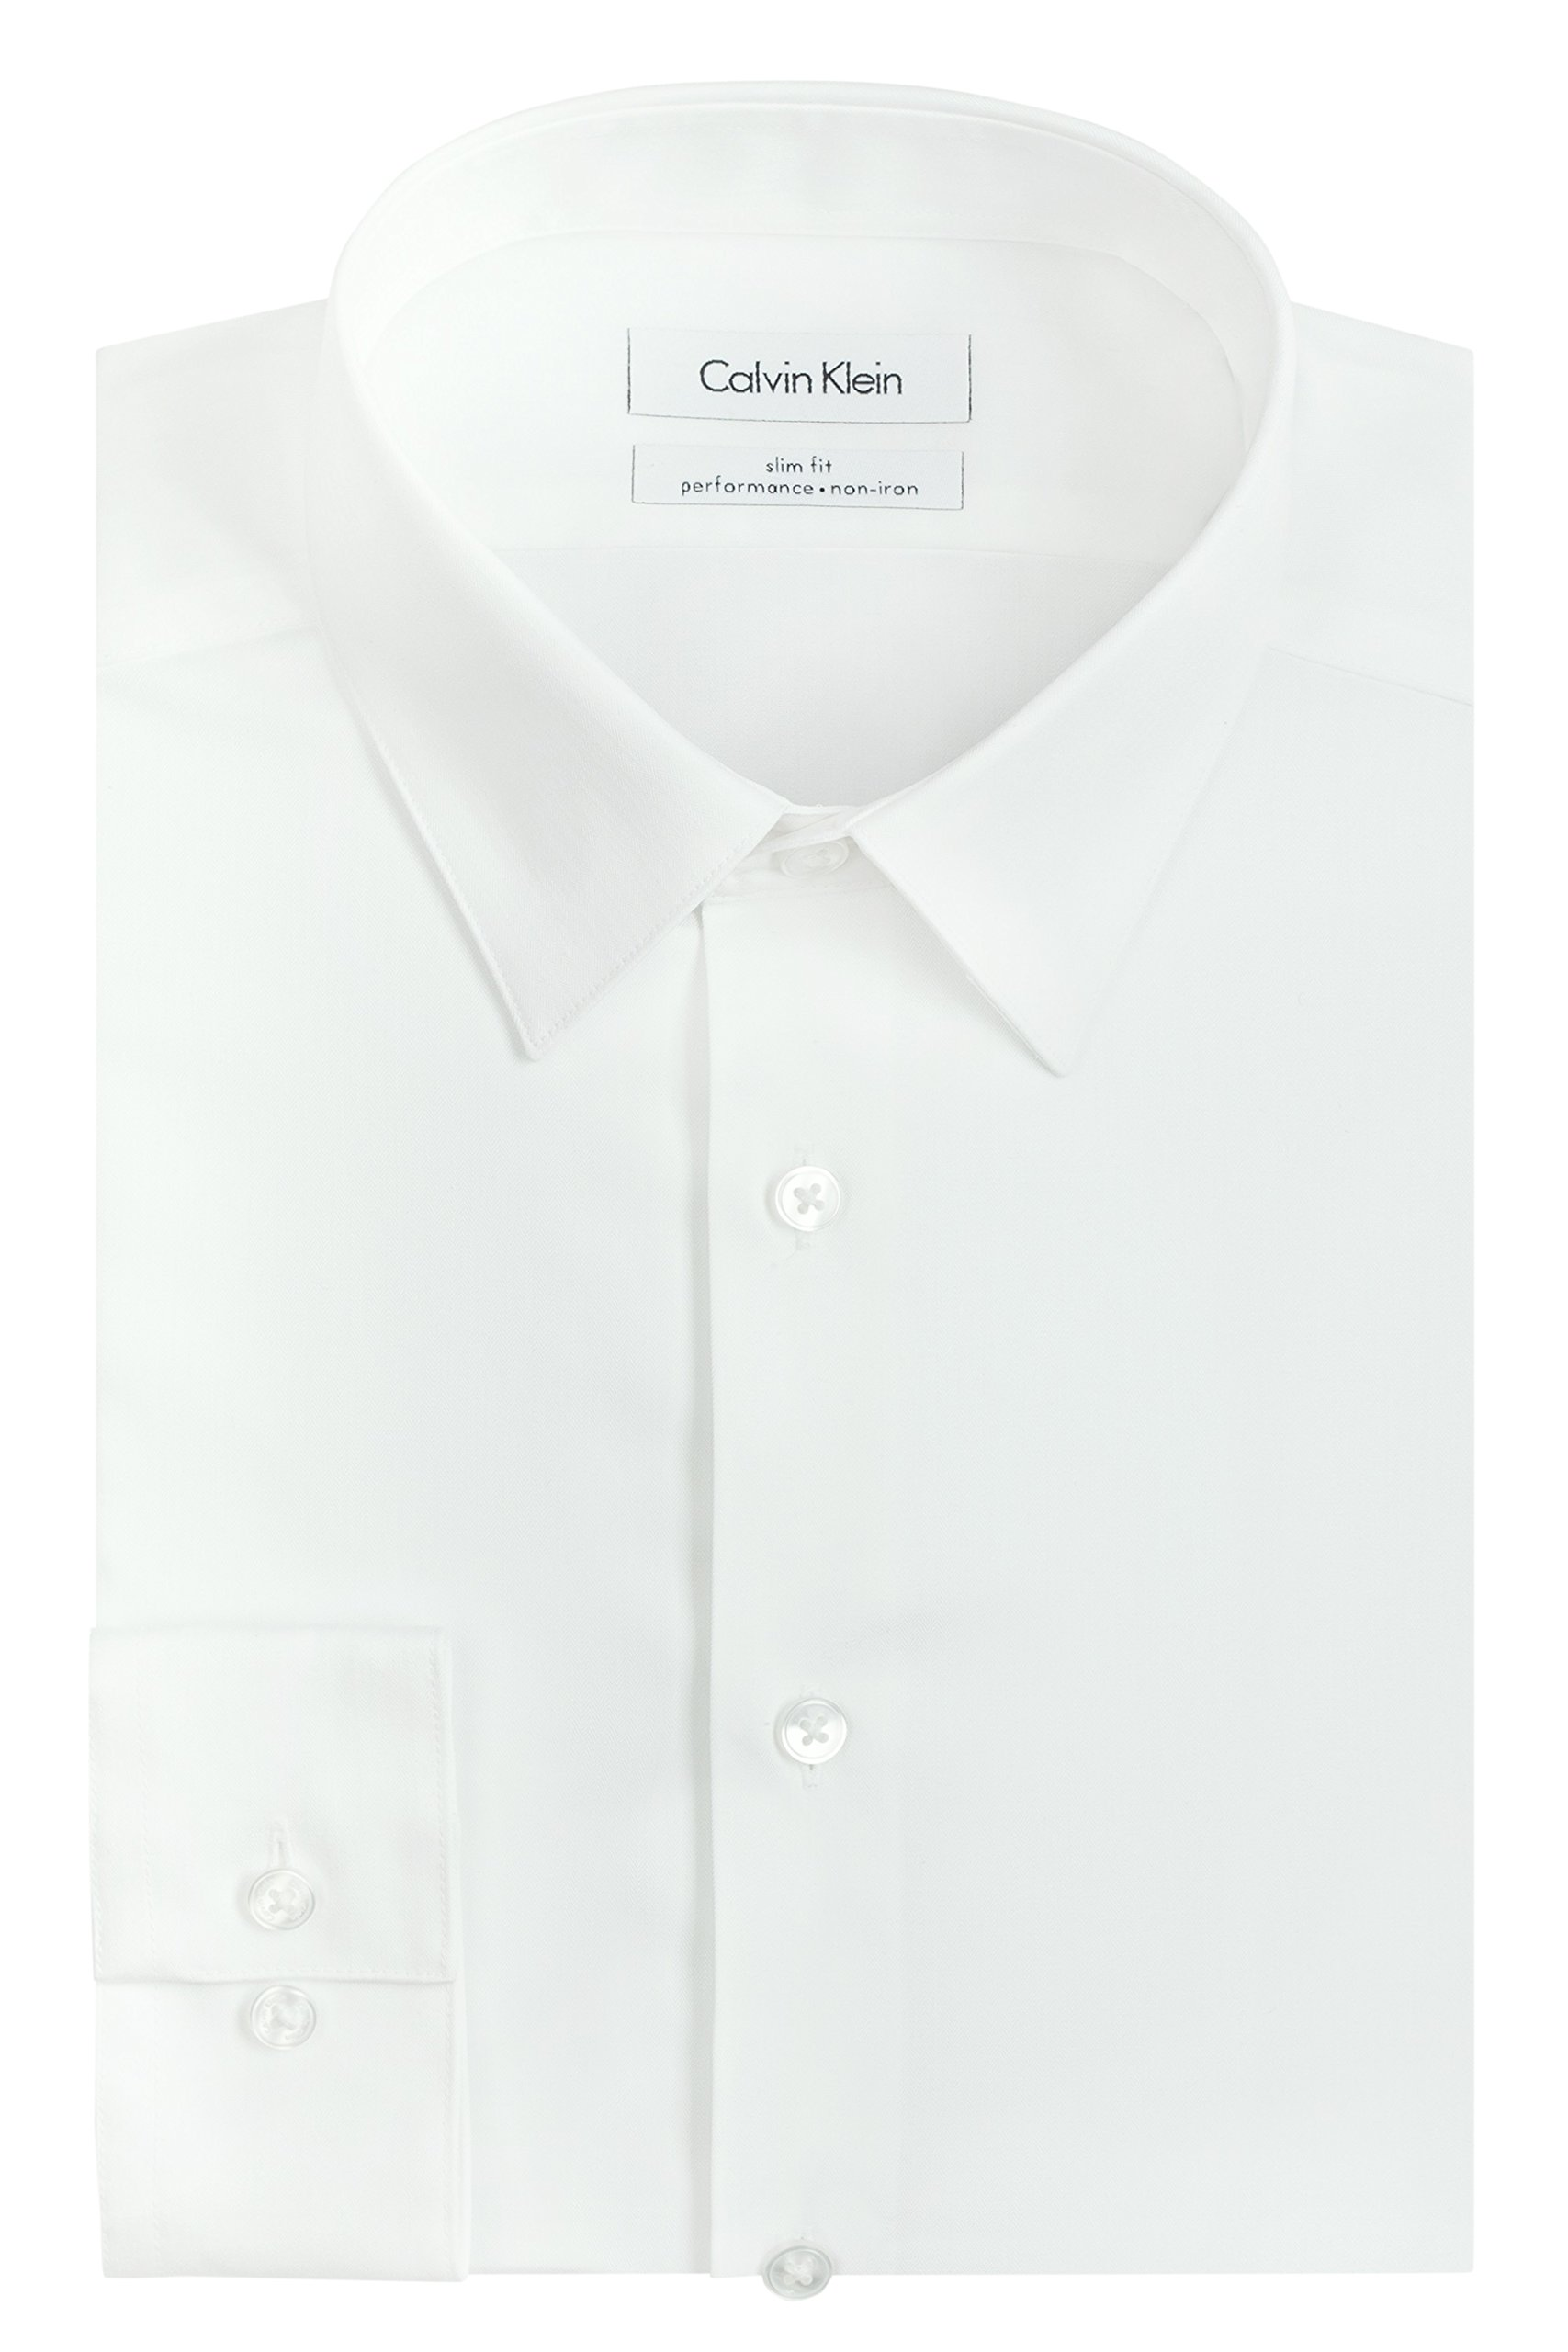 Calvin Klein Men's Slim Fit Non-Iron Herringbone Point Collar Dress Shirt, White, 15.5'' Neck 32''-33'' Sleeve